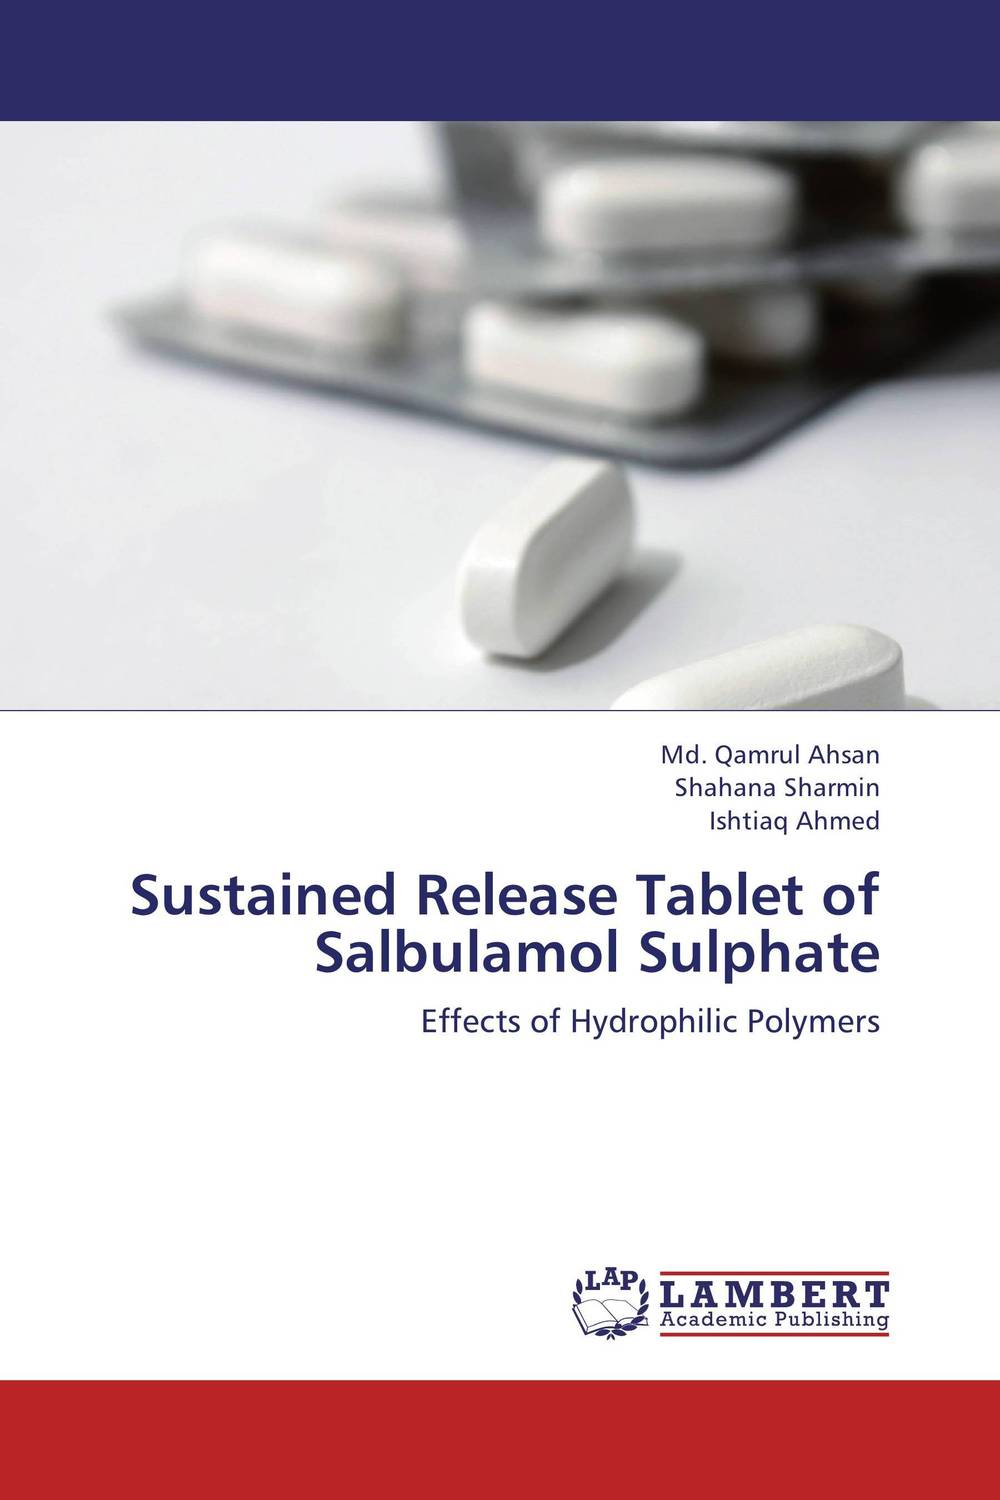 Sustained Release Tablet of Salbulamol Sulphate the release